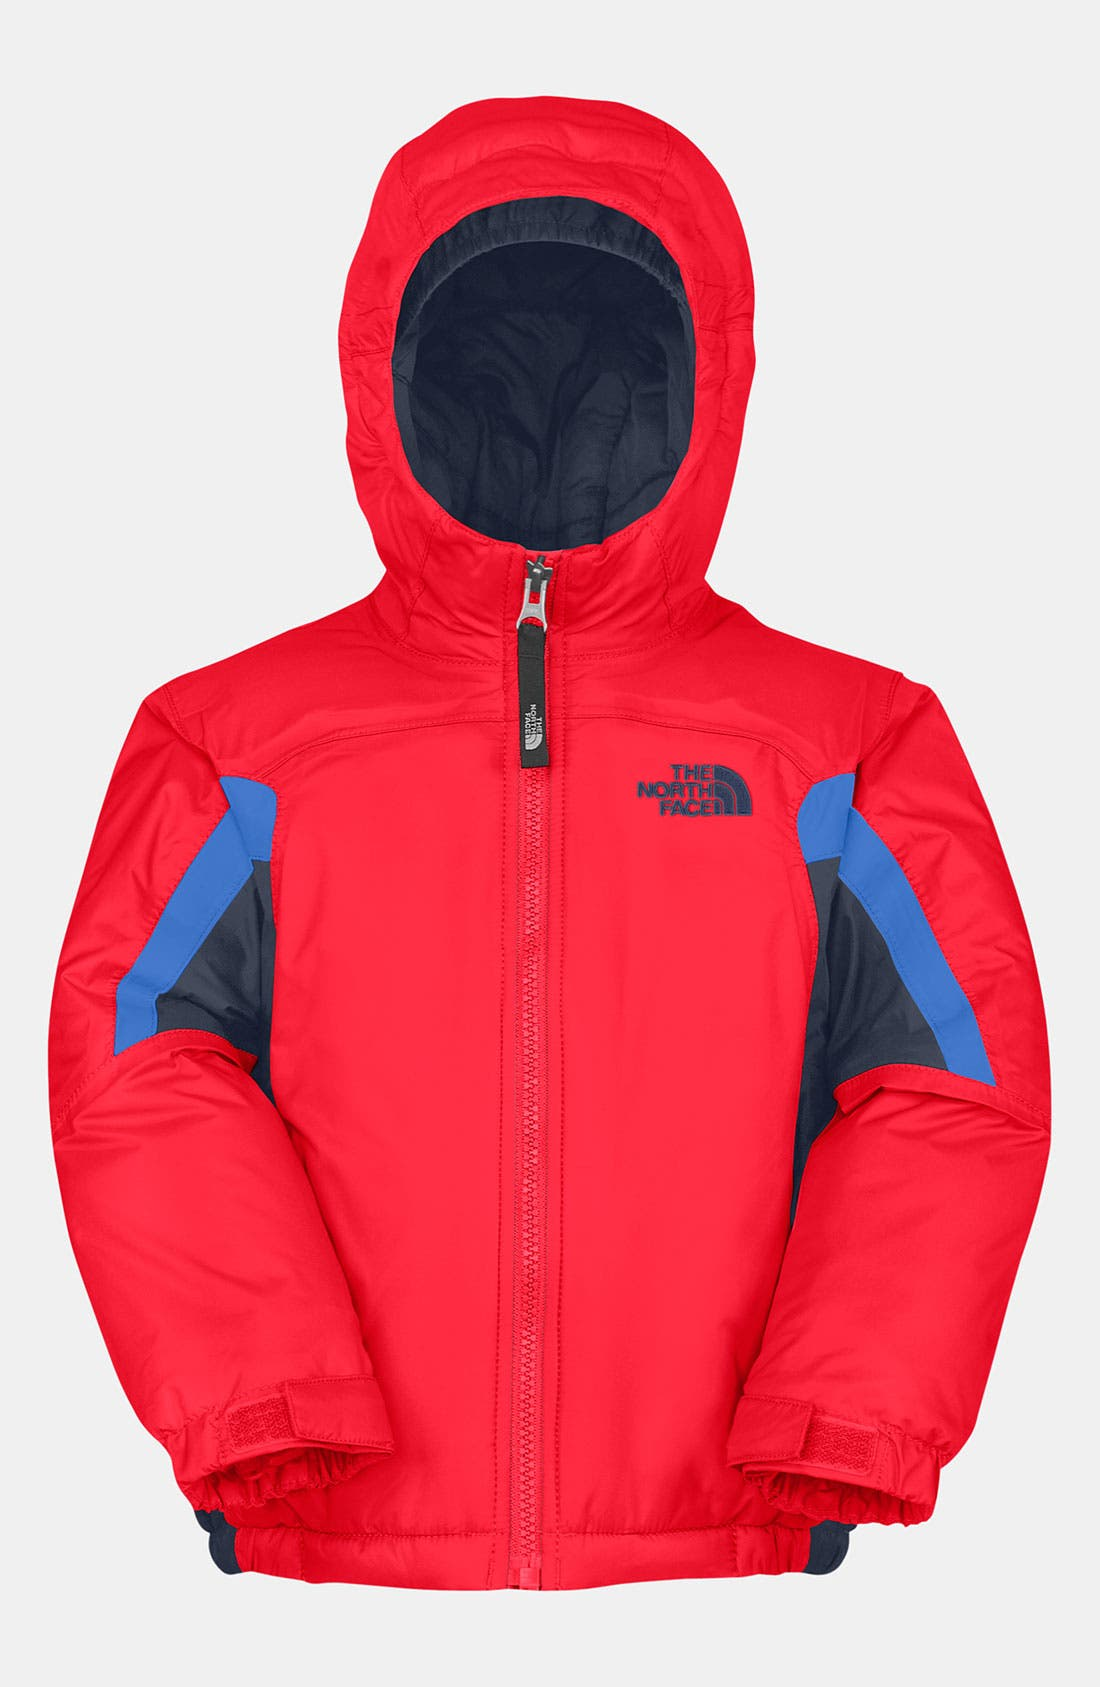 Alternate Image 1 Selected - The North Face 'Out of Bounds' Waterproof Jacket (Toddler)